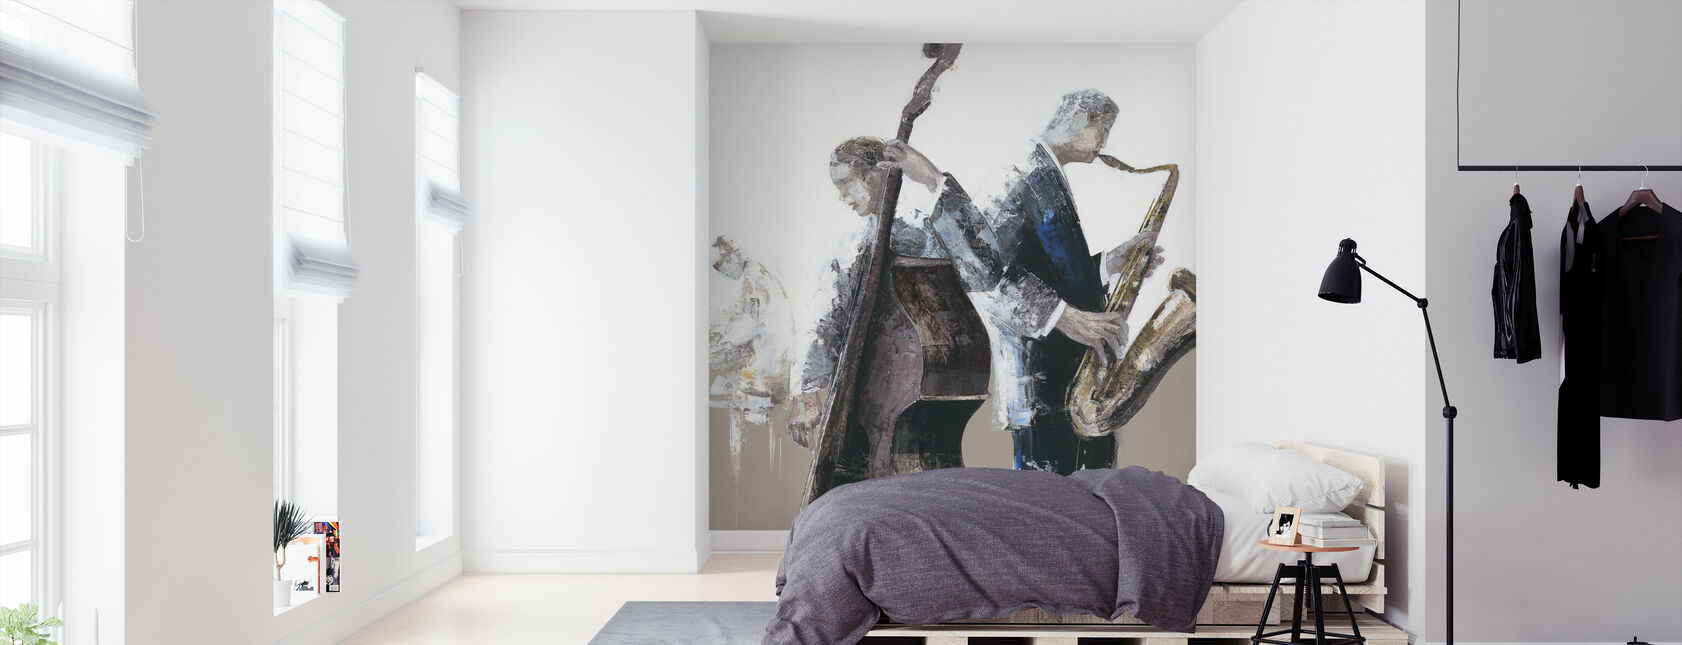 Jazz Band - Wallpaper - Bedroom